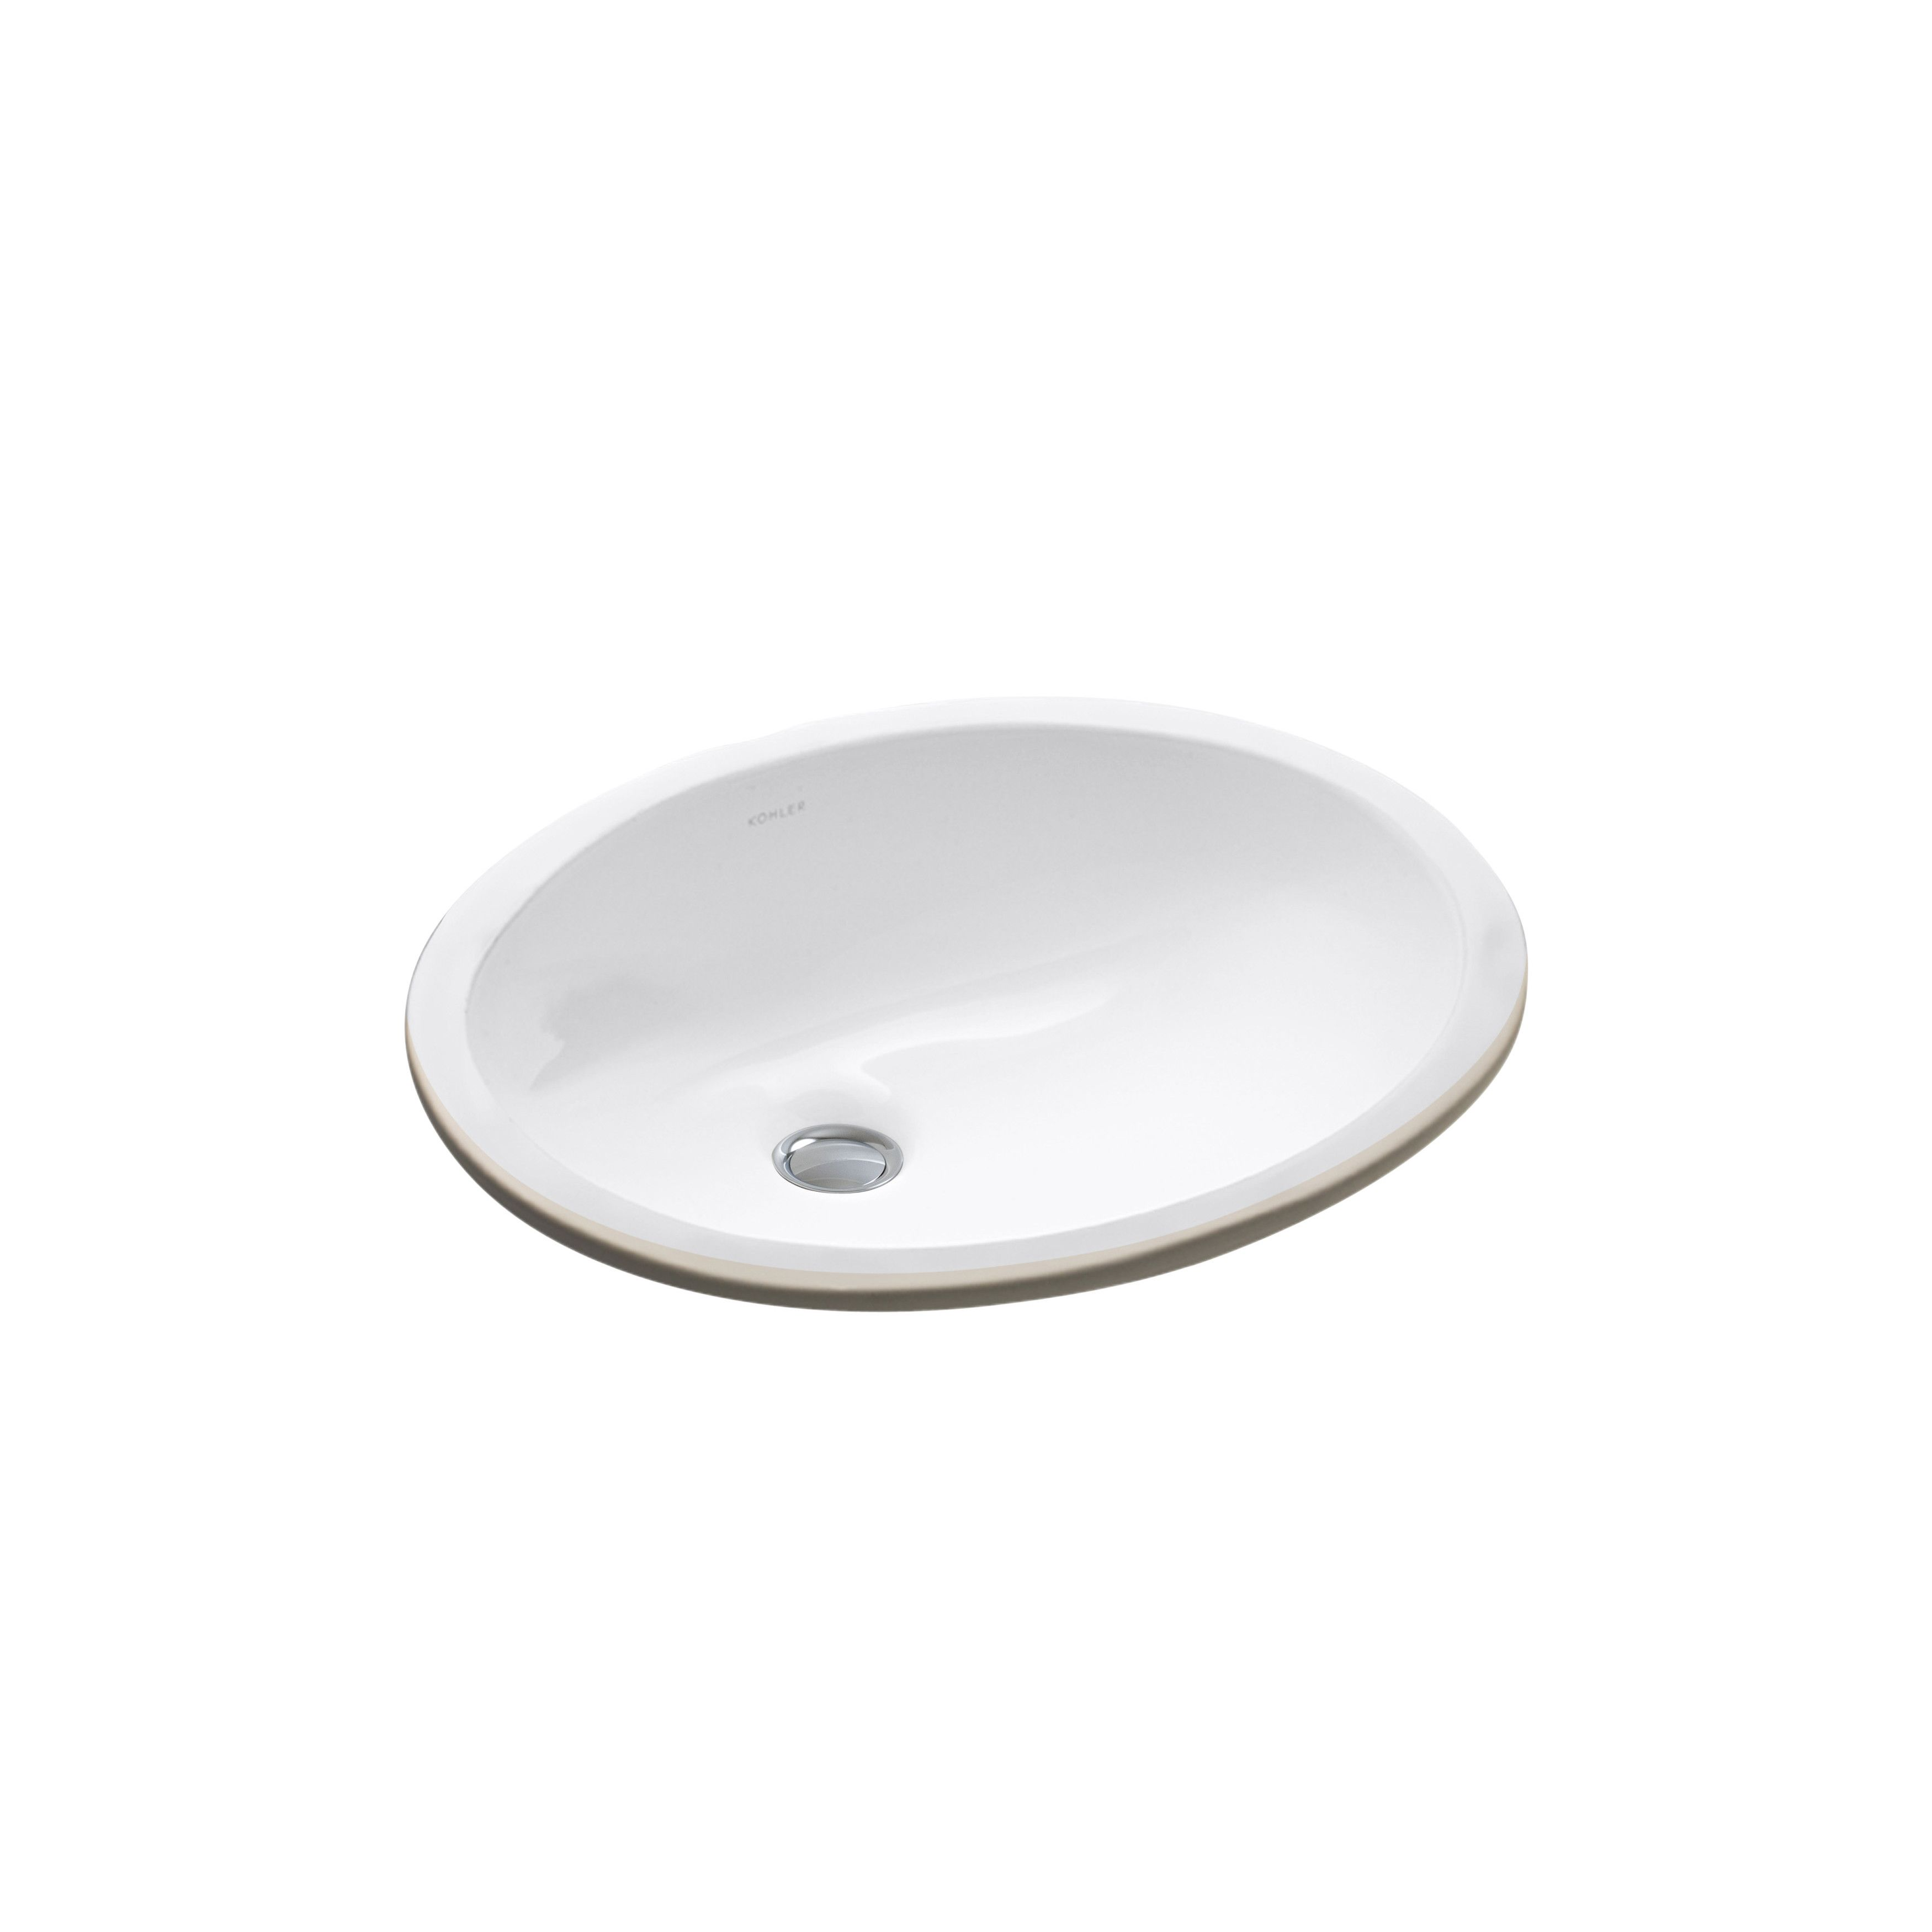 Caxton Ceramic Oval Undermount Bathroom Sink With Overflow Kids